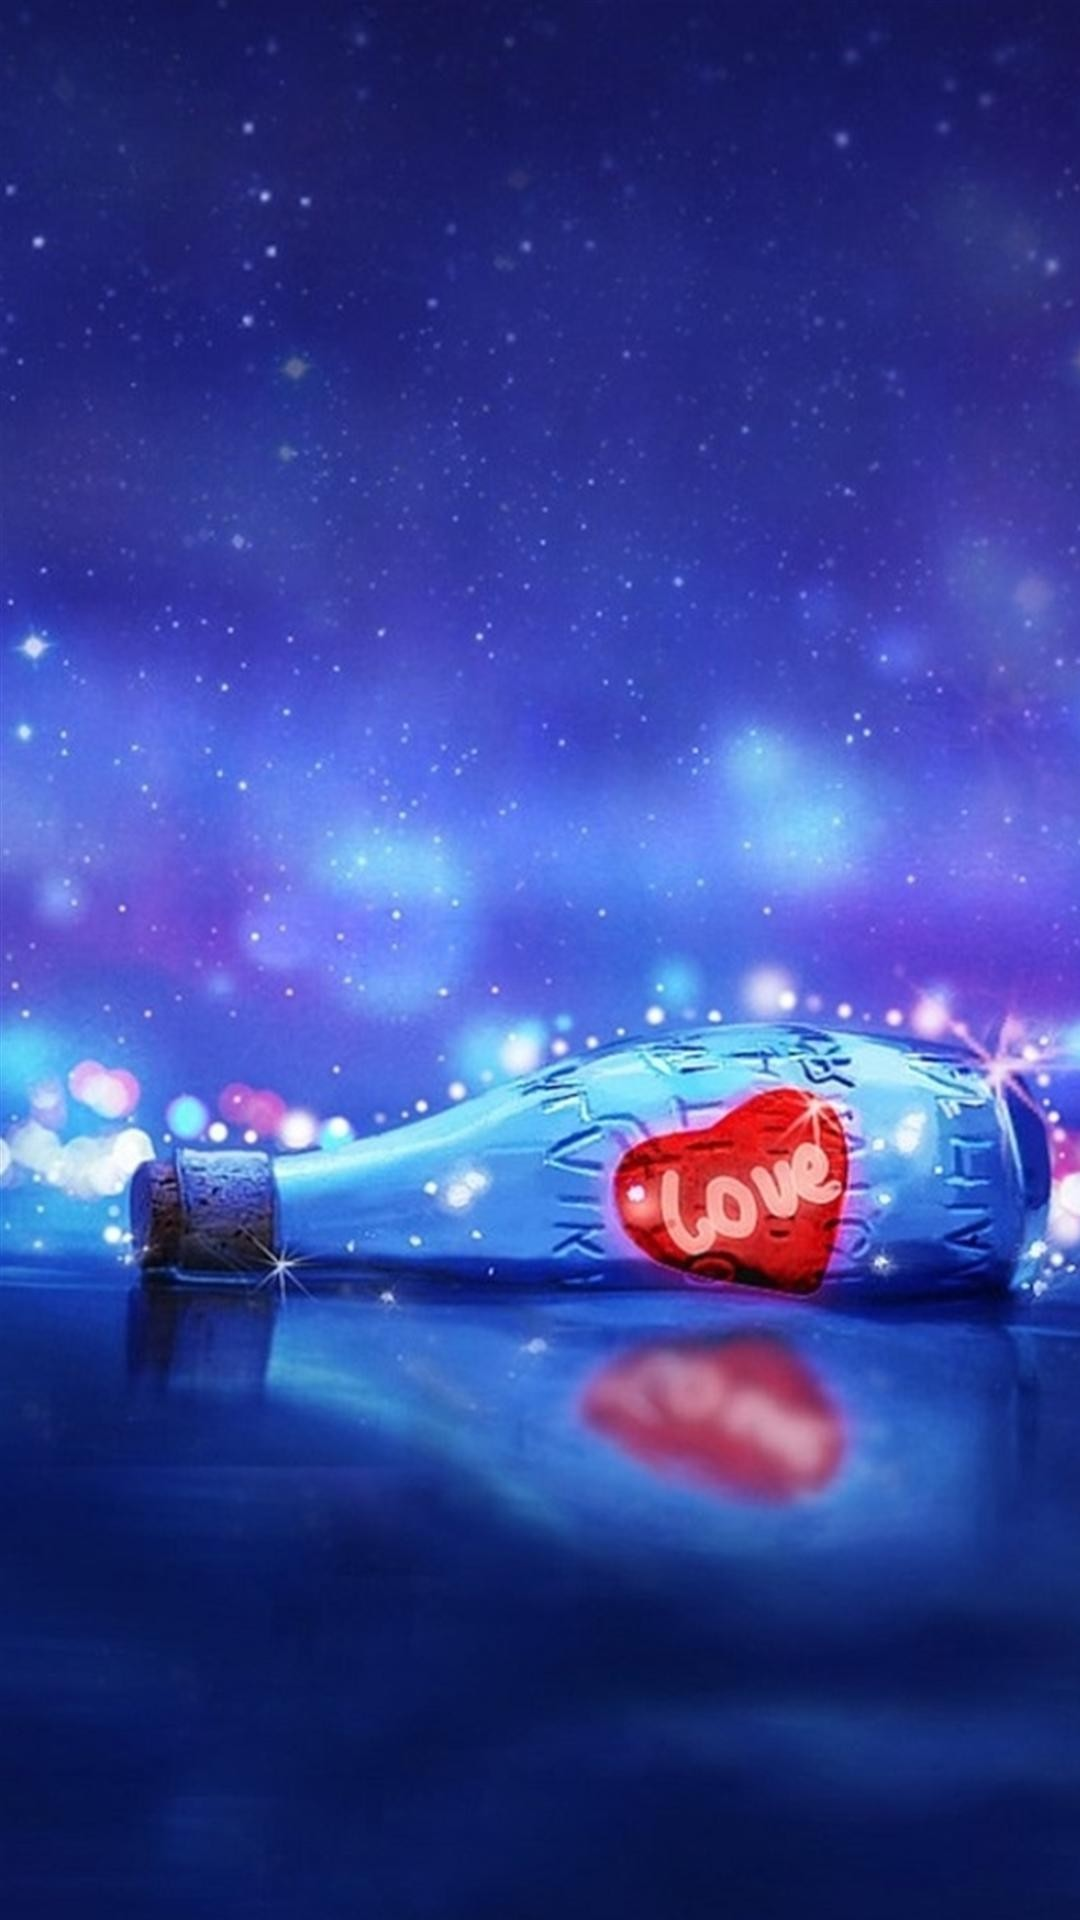 Free Download Love Galaxy S4 Wallpapers Hd84 Hd Galaxy S4 Wallpapers 1080x1920 For Your Desktop Mobile Tablet Explore 54 Galaxy Love Wallpapers Galaxy Love Wallpapers Galaxy Wallpaper Love Wallpapers